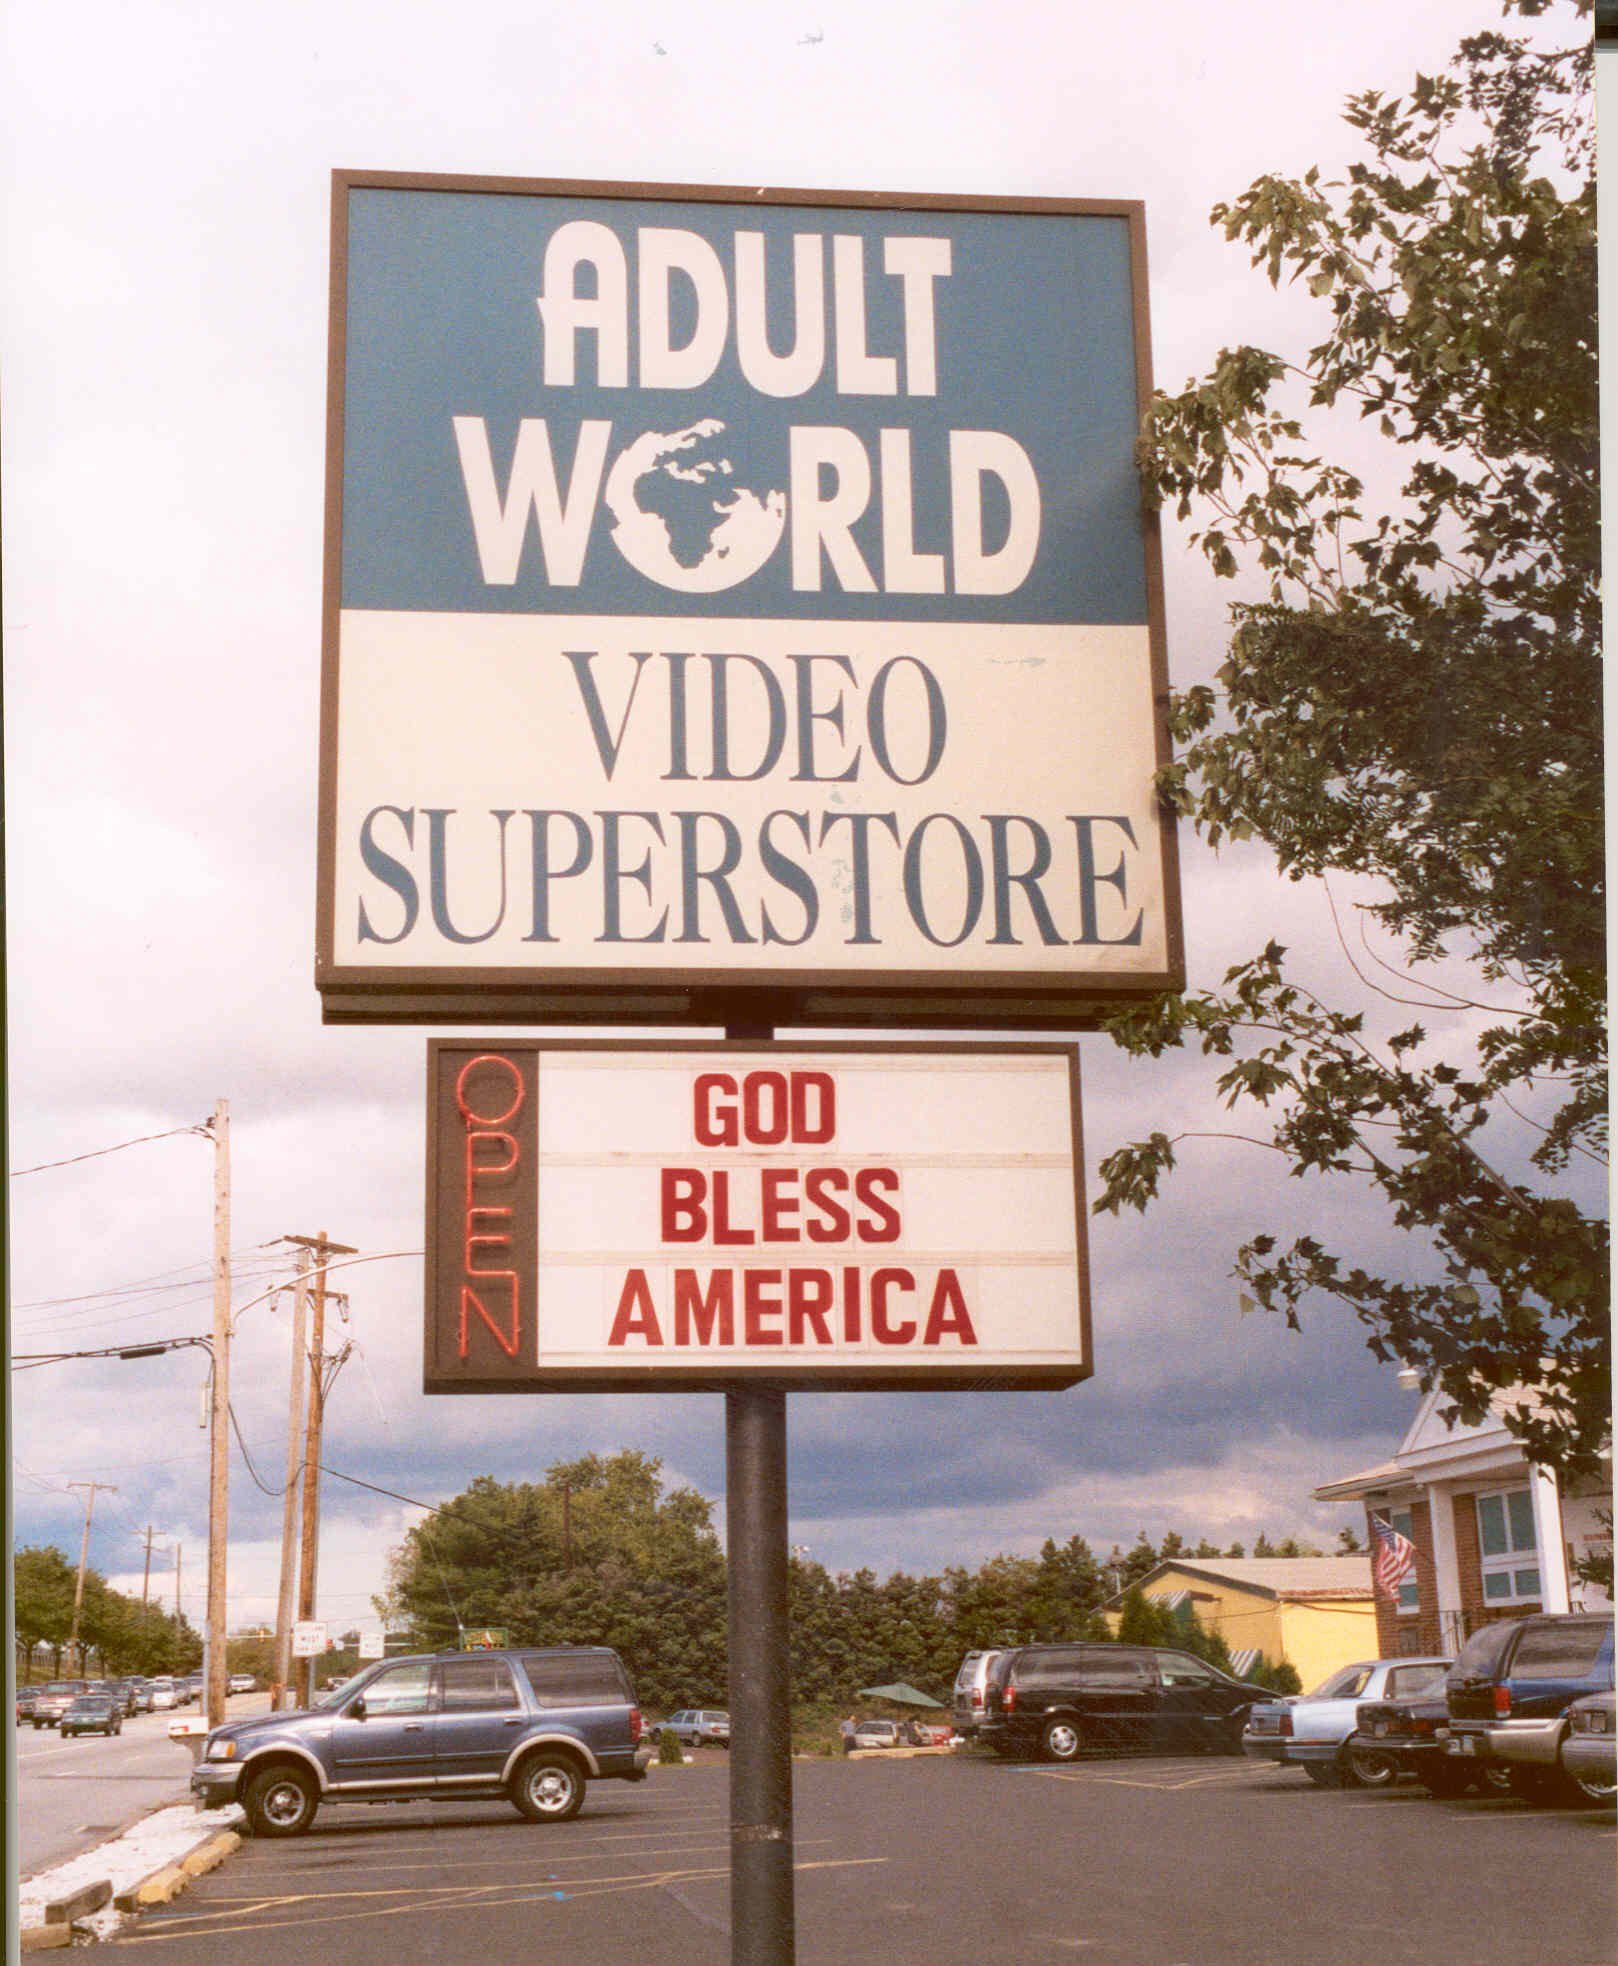 For adult world pa